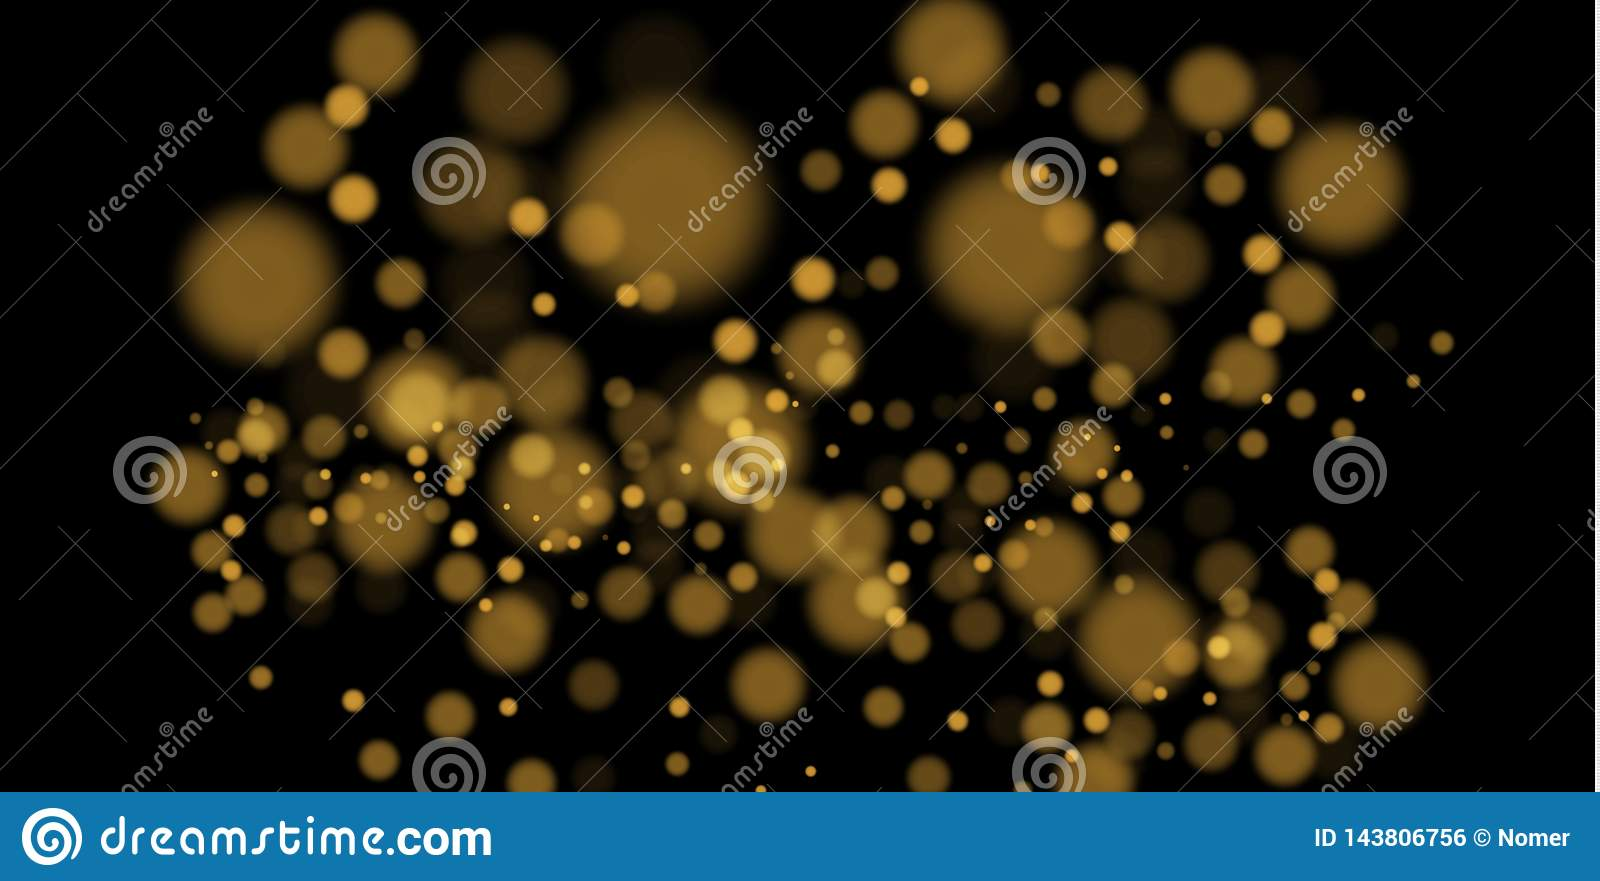 Light abstract glowing bokeh lights. Bokeh lights effect isolated on transparent background. Festive purple and golden